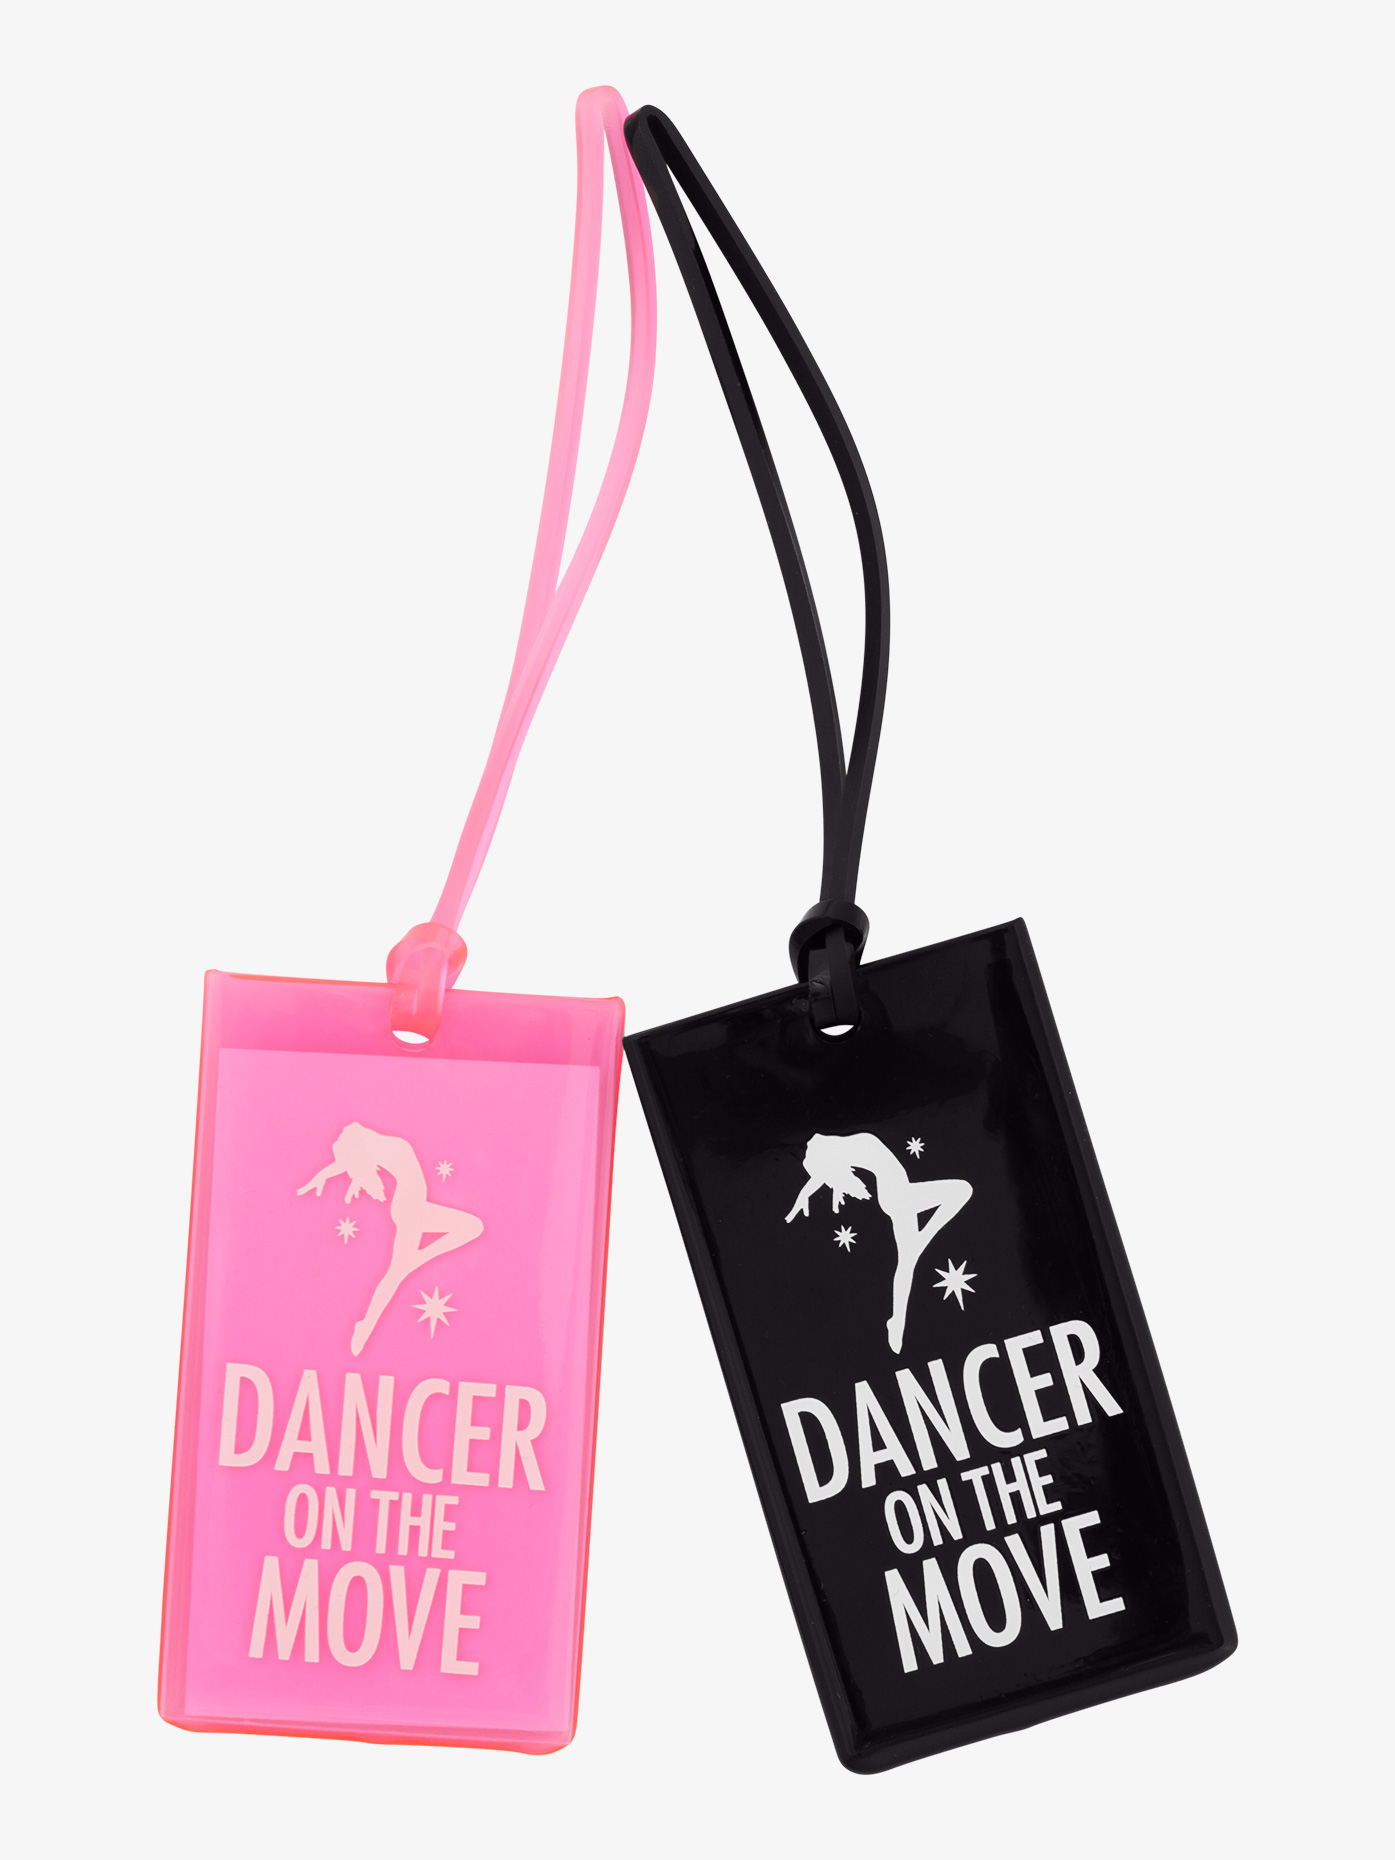 B-YOU Dancer on the Move Luggage Tag FP045